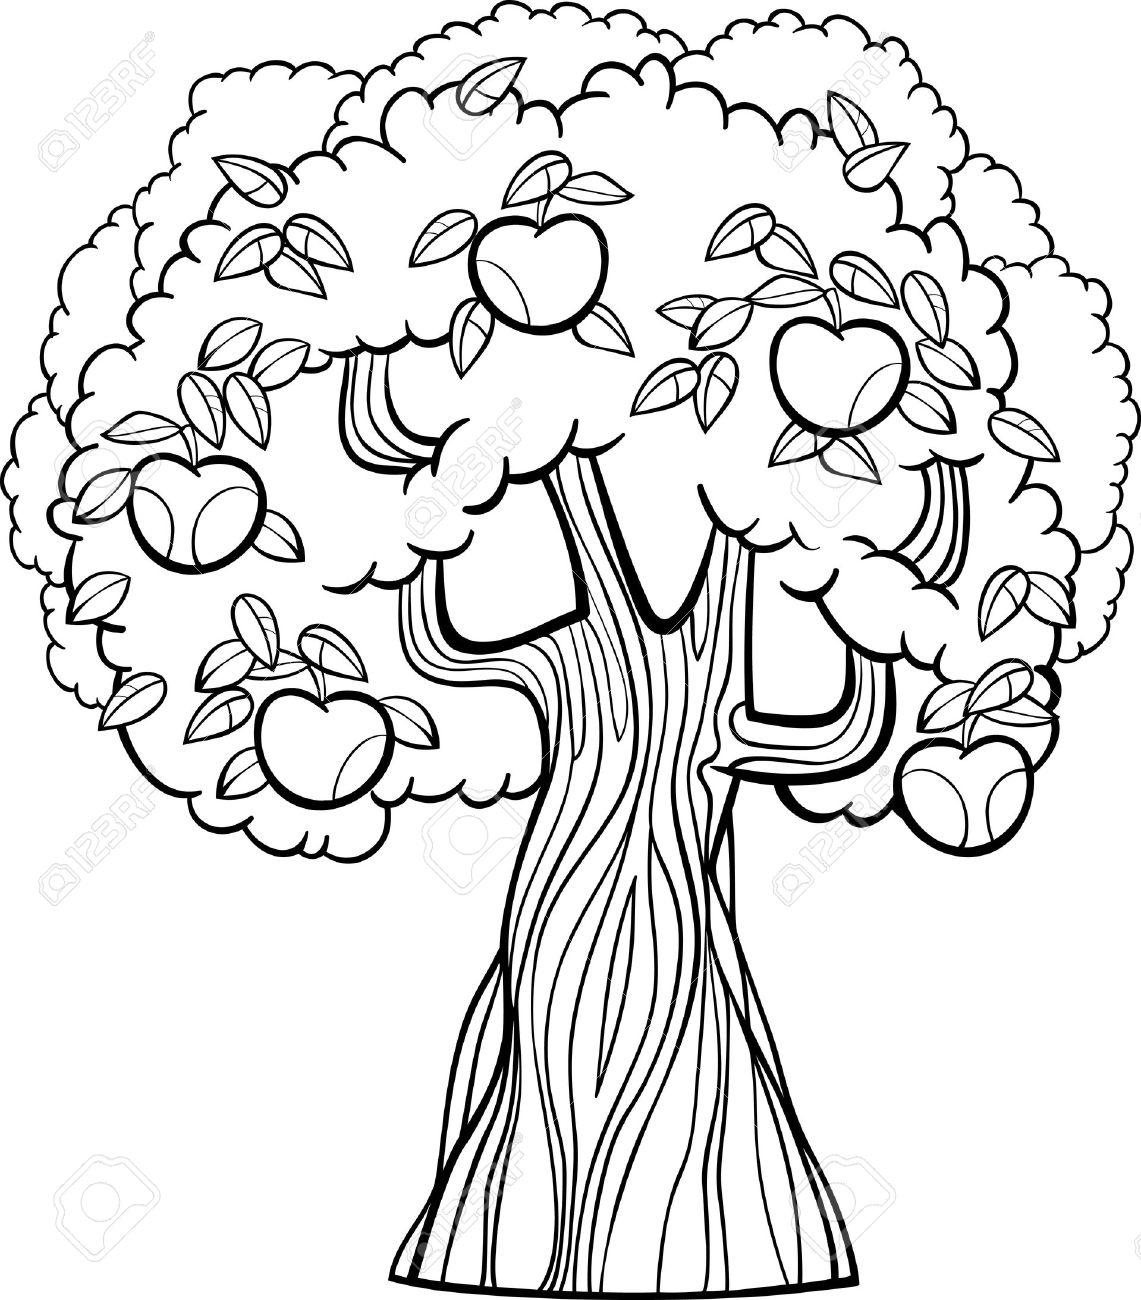 apple tree clipart black and white. black and white cartoon illustration of apple tree with apples for coloring book stock vector - clipart